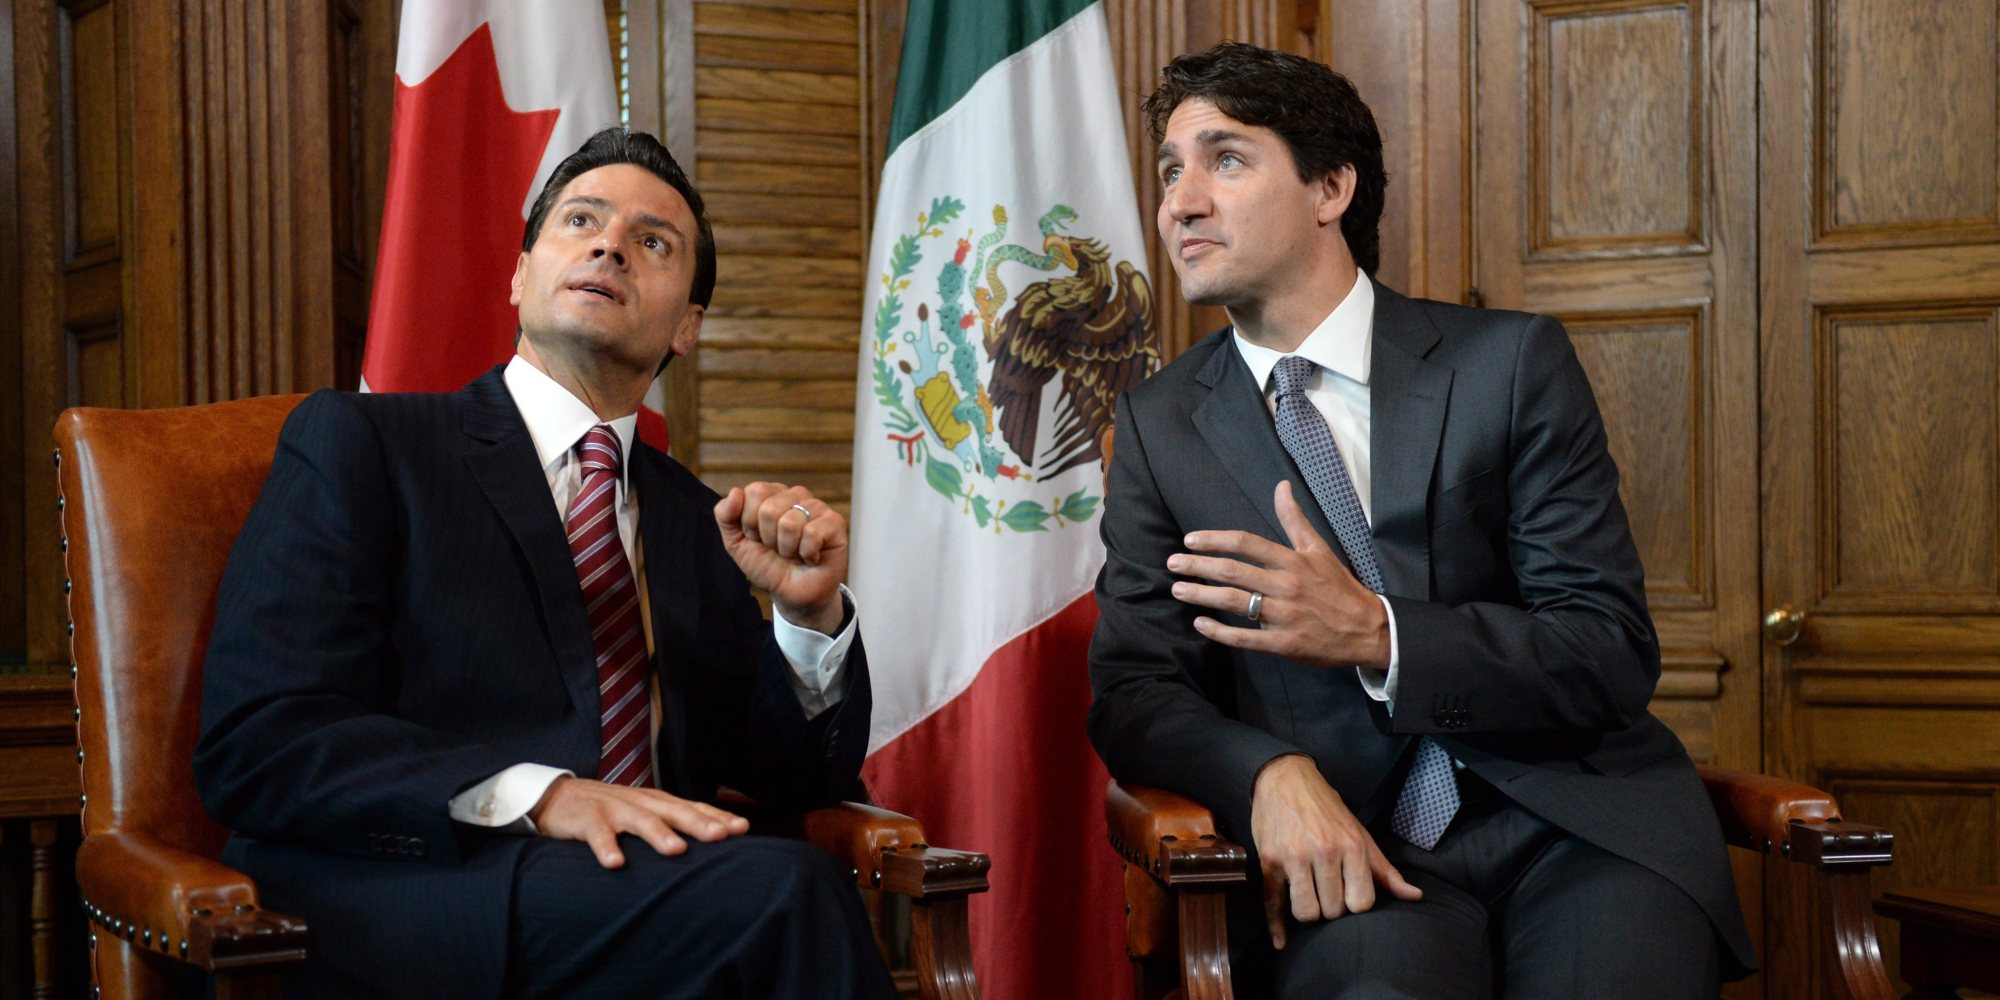 Mexico and Canada